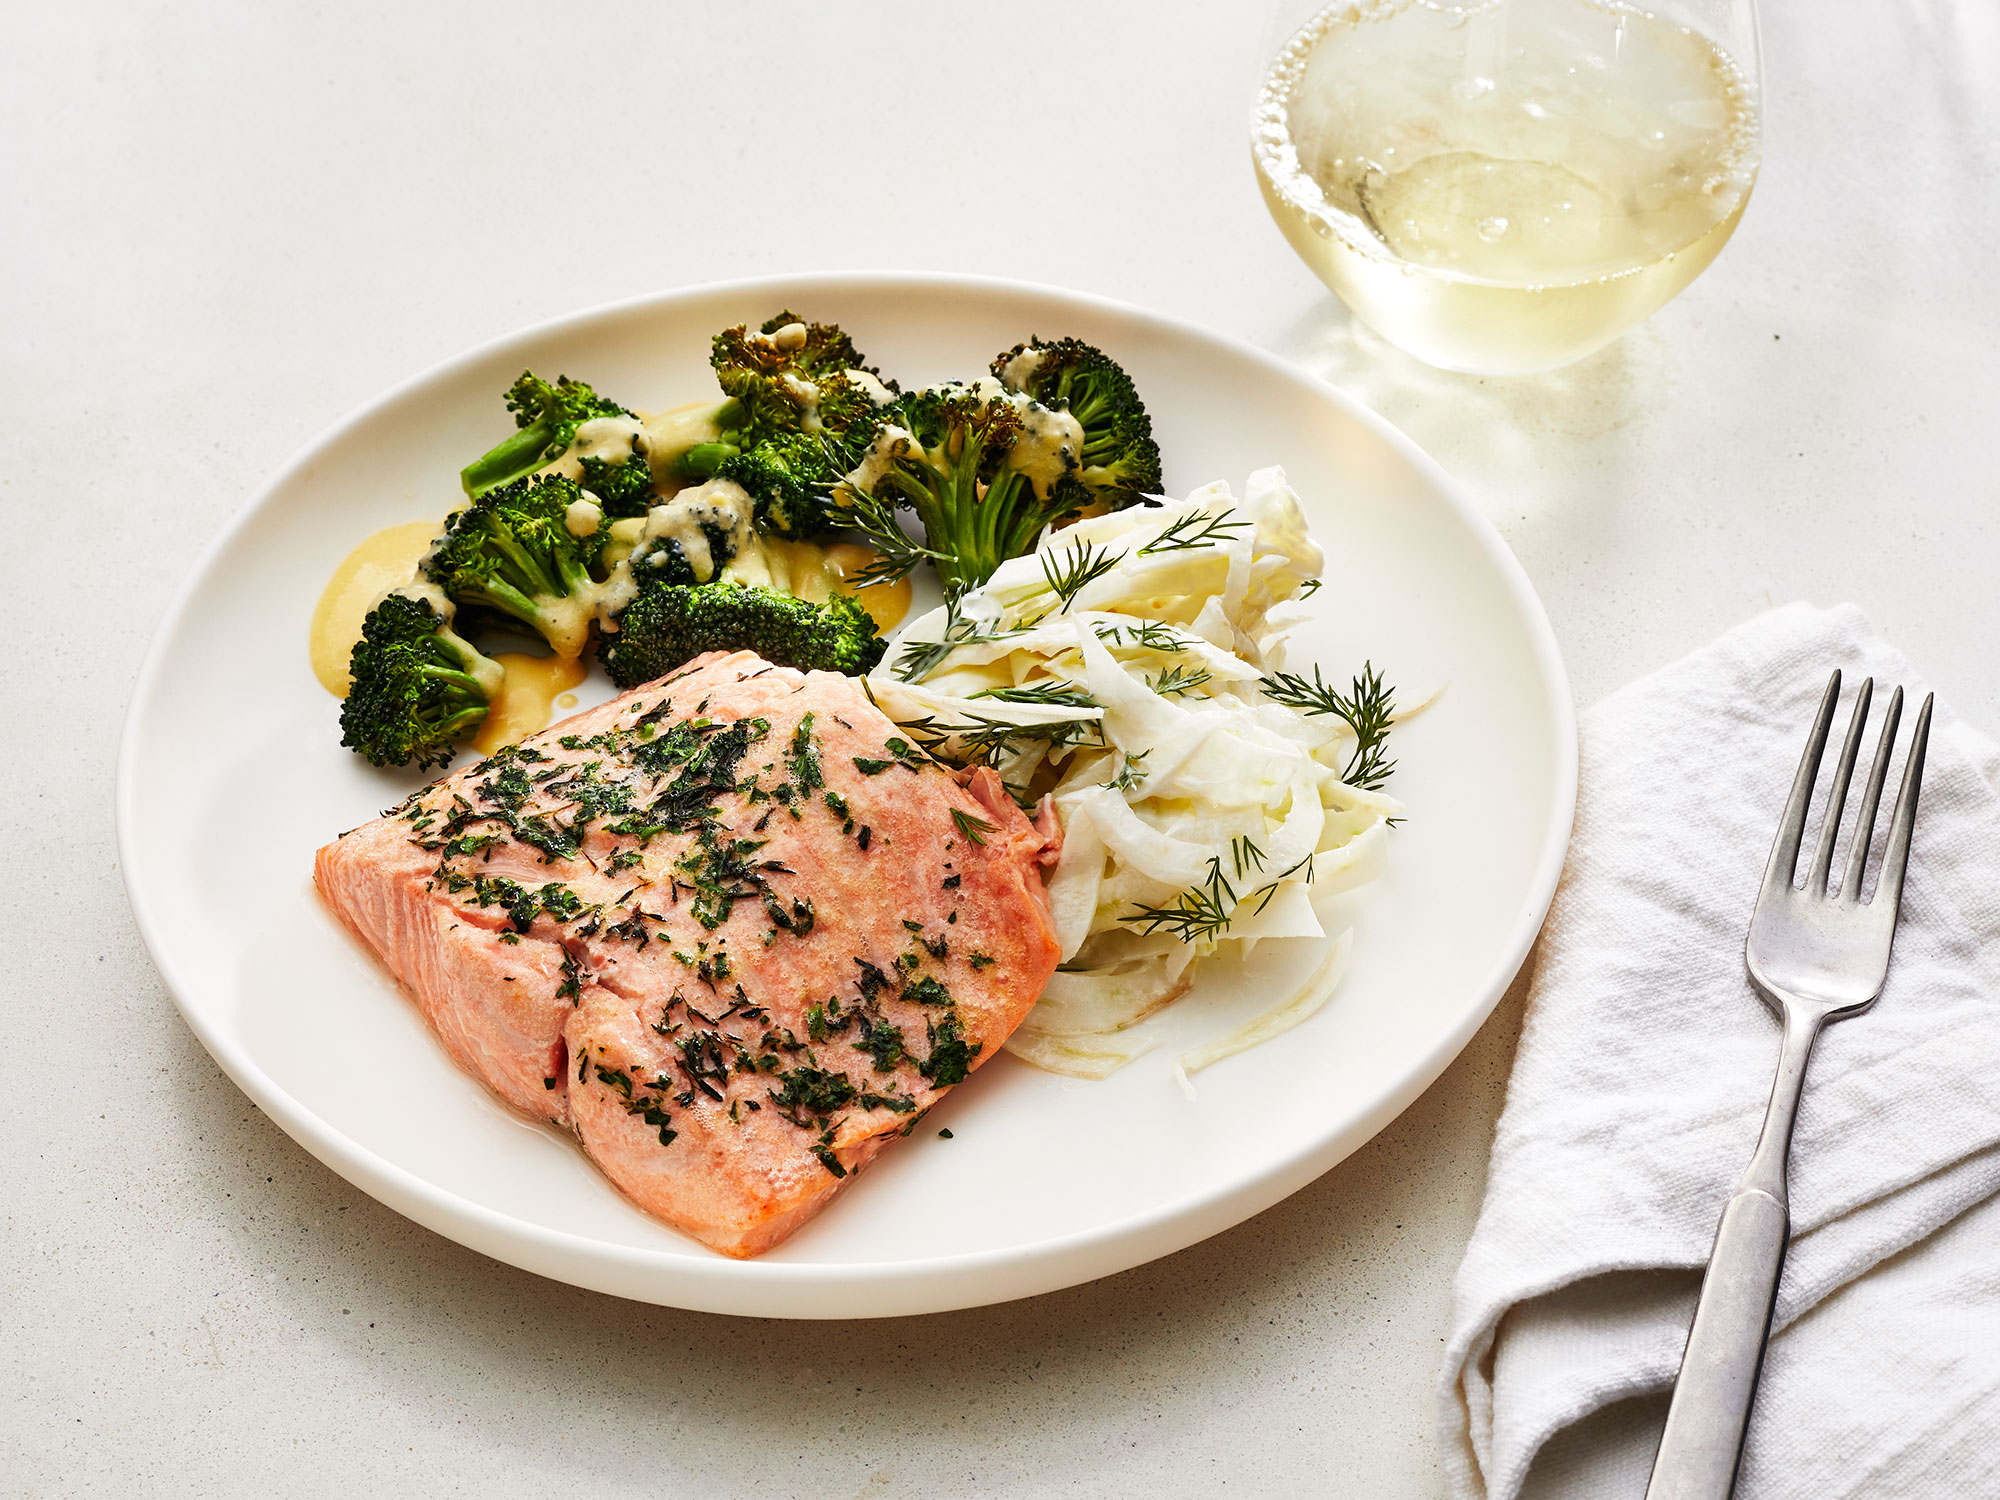 Yes, You Can Make Roasted Salmon With Fennel Salad in an Air Fryer